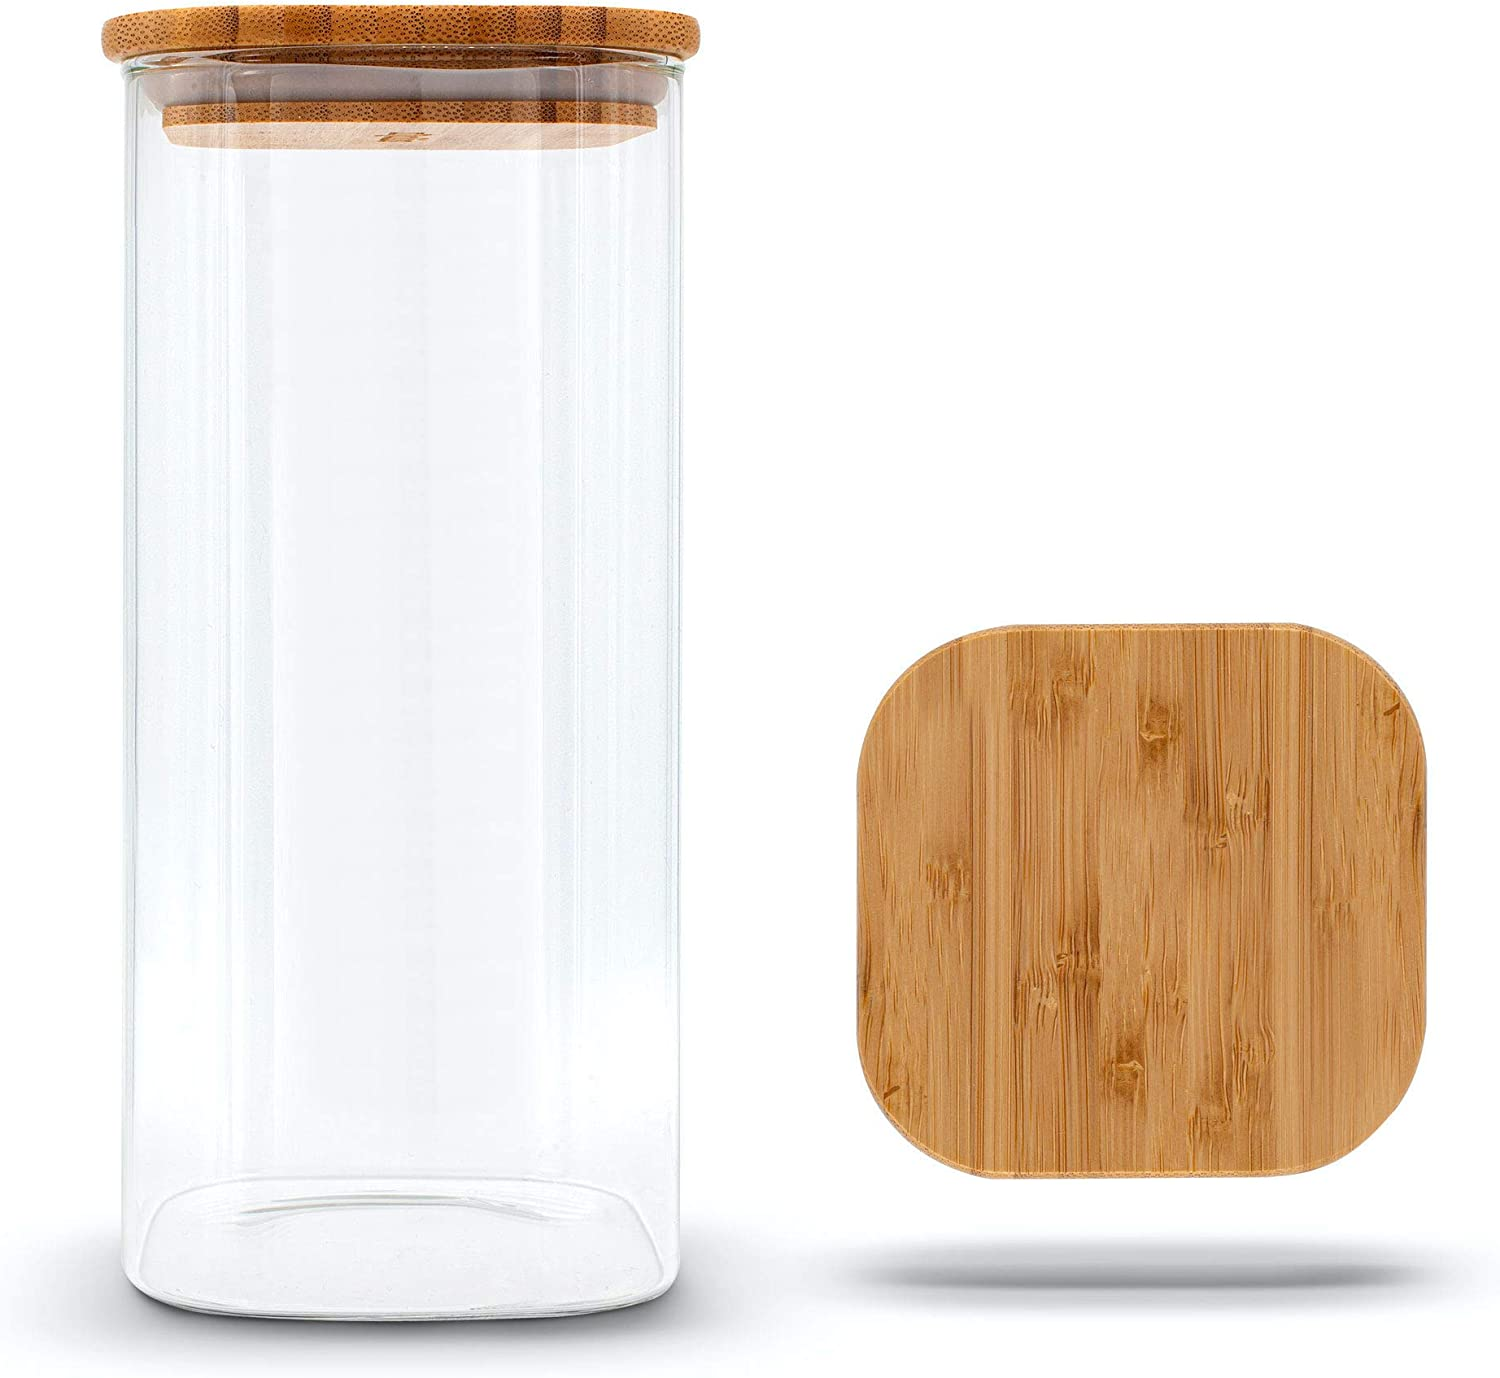 Molis Square Storage Jar with Bamboo Lid 9 kg for Flour 9.9 L Large Storage  Jar Versatile and Aroma Tight